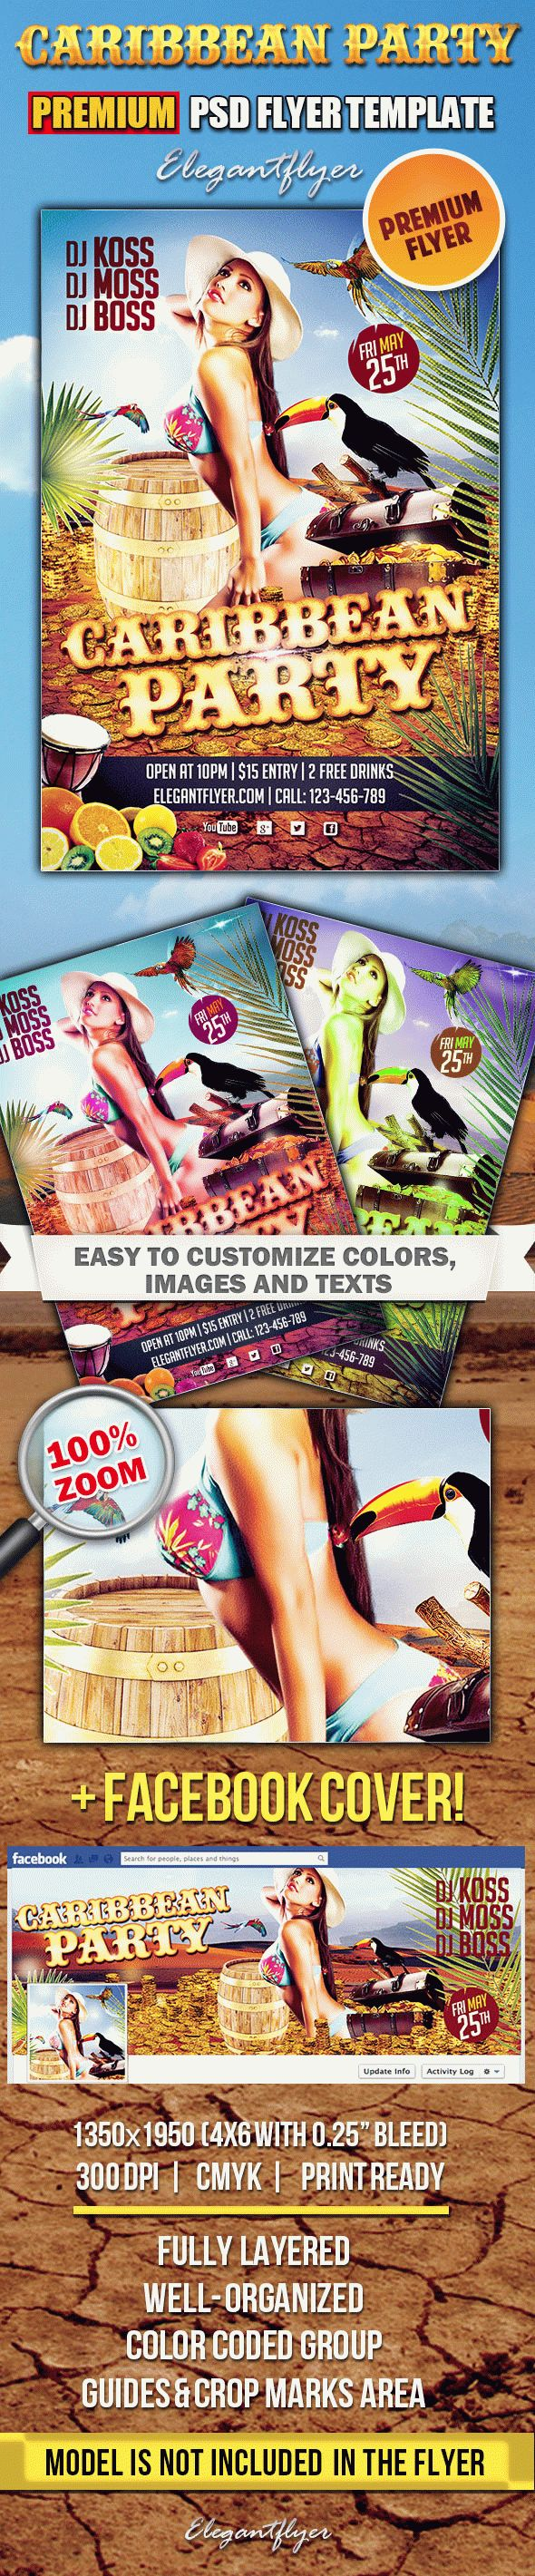 Caribbean Party – Premium Club flyer PSD Template ...